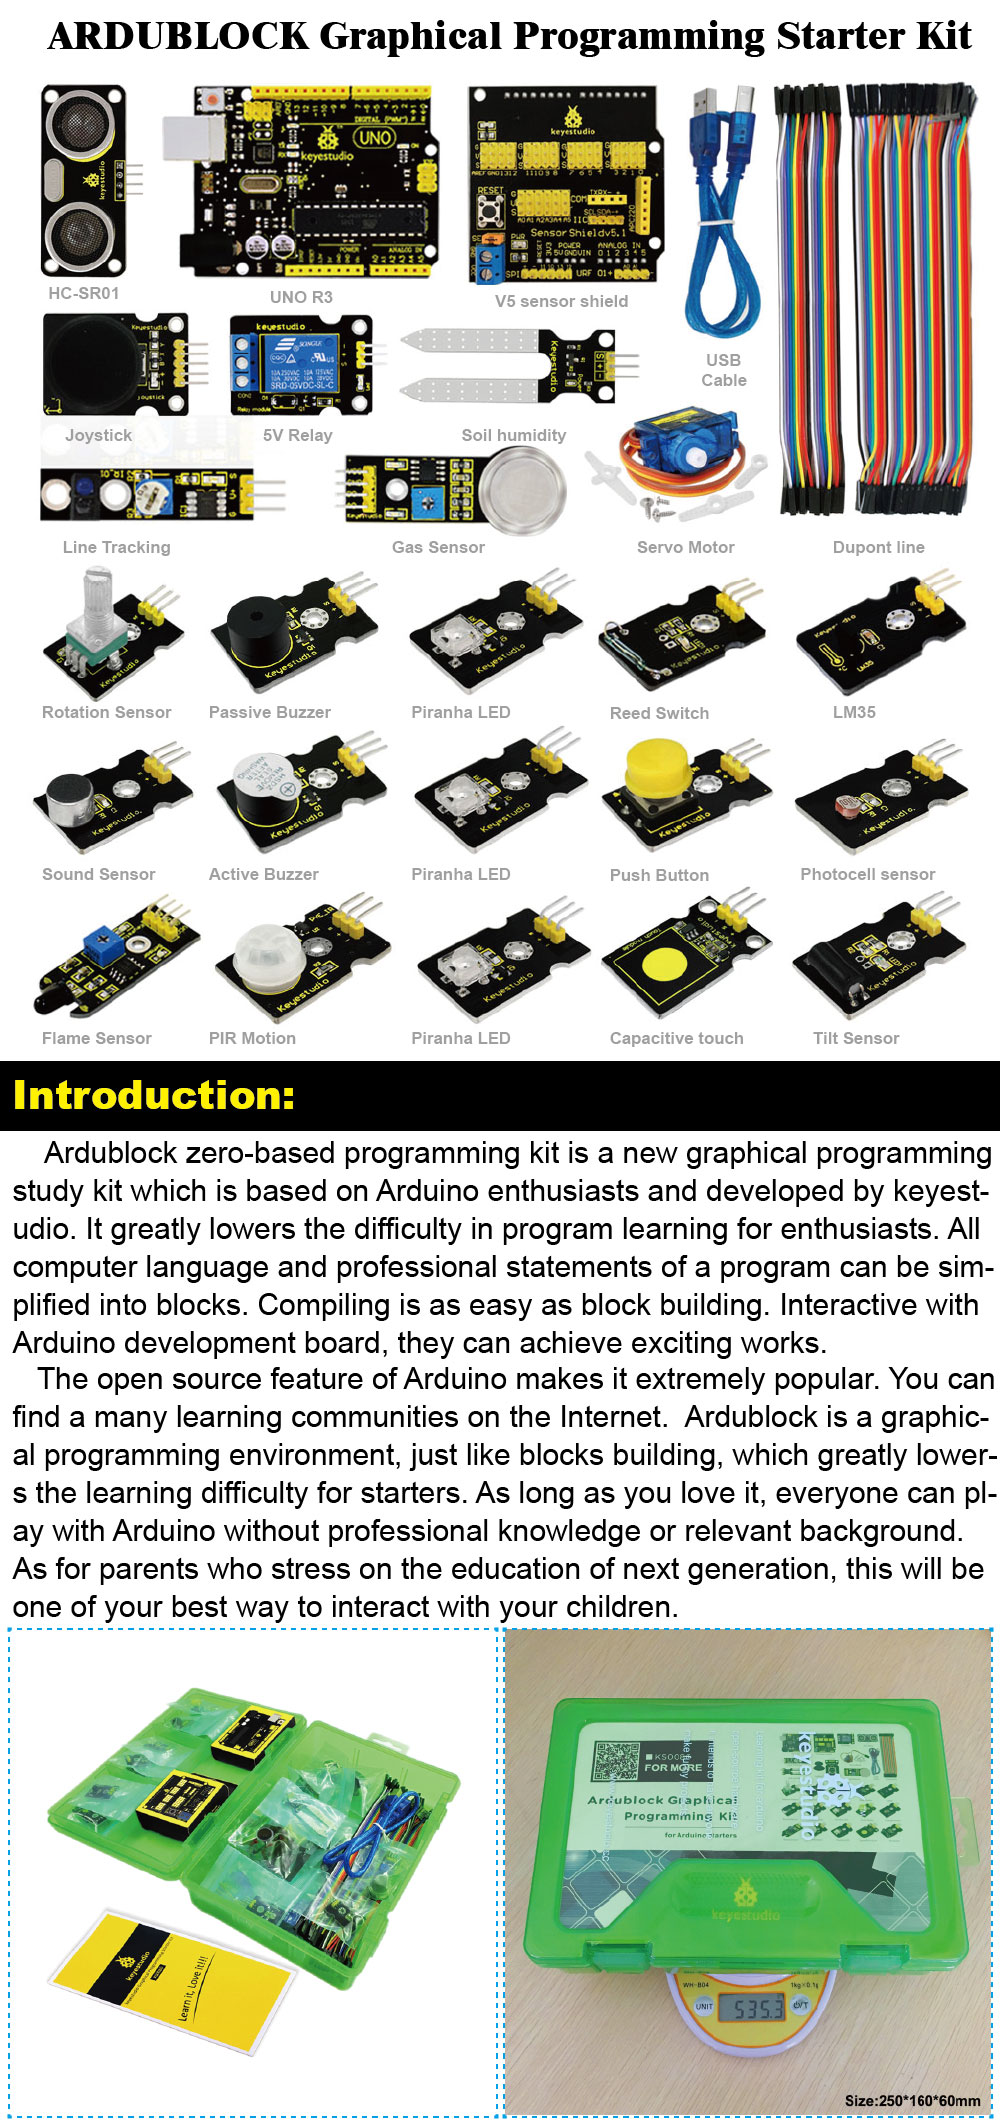 Keyestudio ARDUBLOCK Graphical Programming Starter Kit for Arduino  Education Study +UNOR3/Dupont Lines-in Home Automation Kits from Consumer